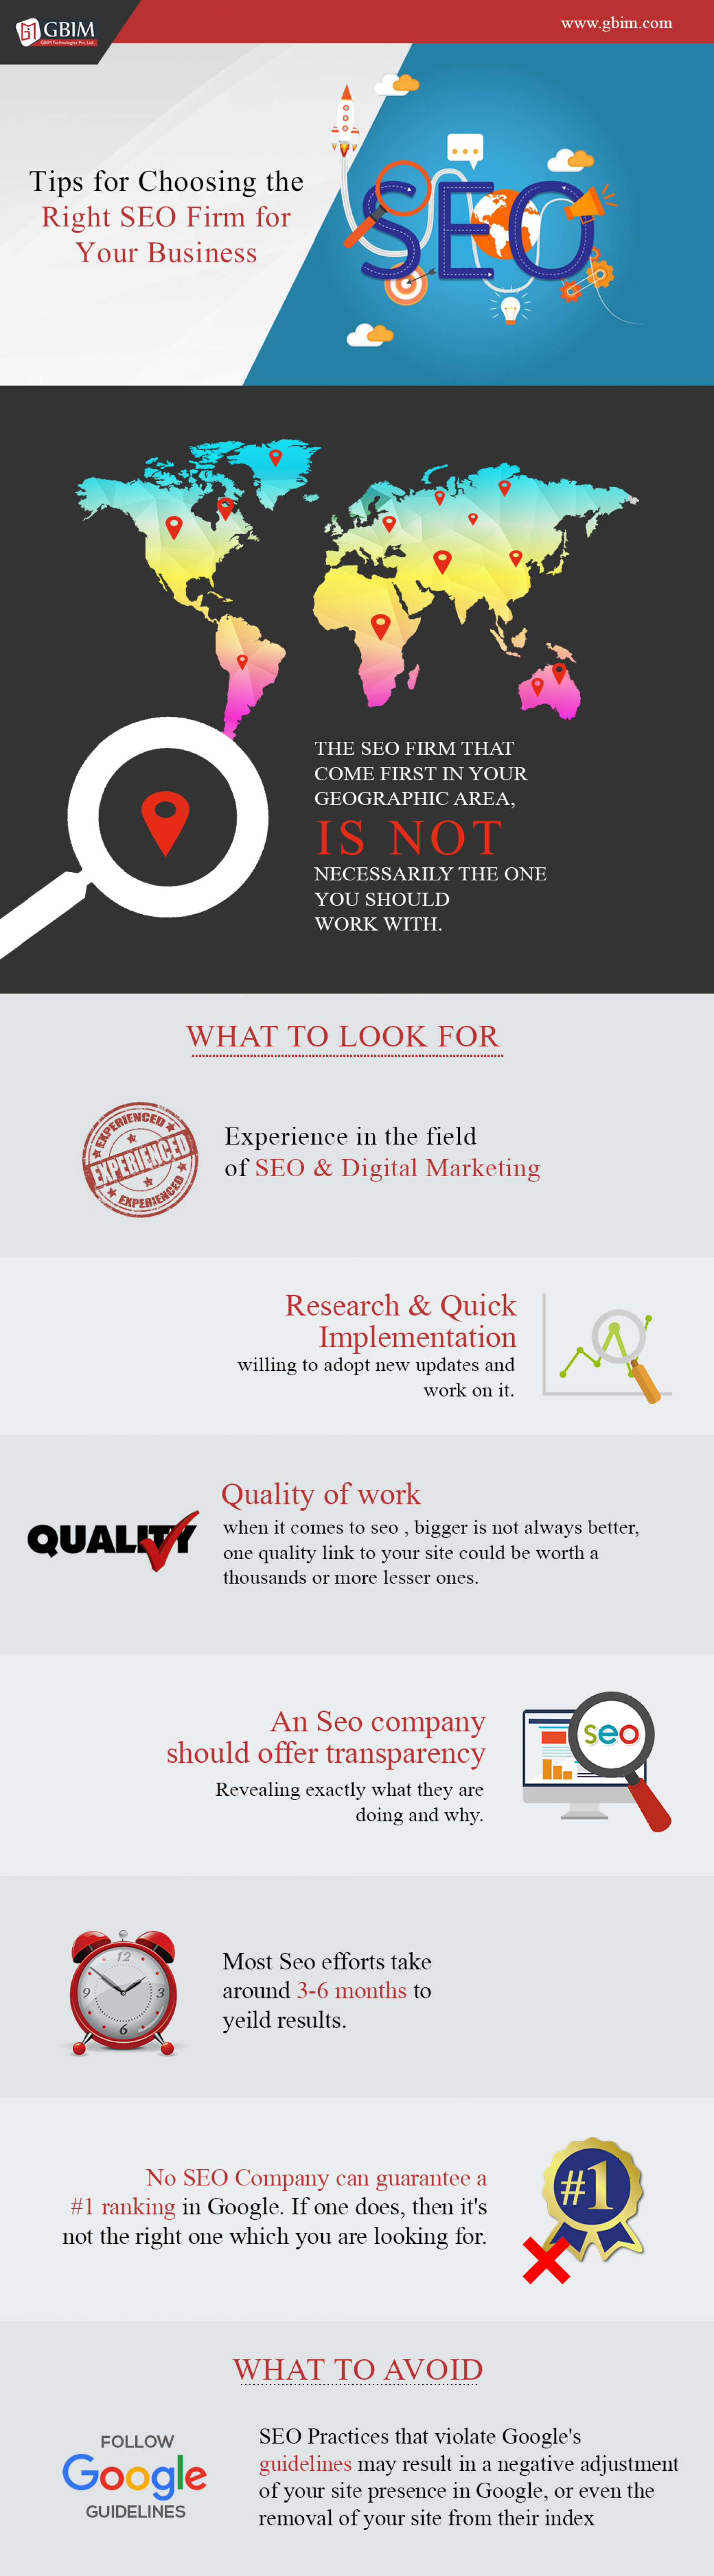 Tips For Choosing Right SEO Partner For your Business!  Infographic